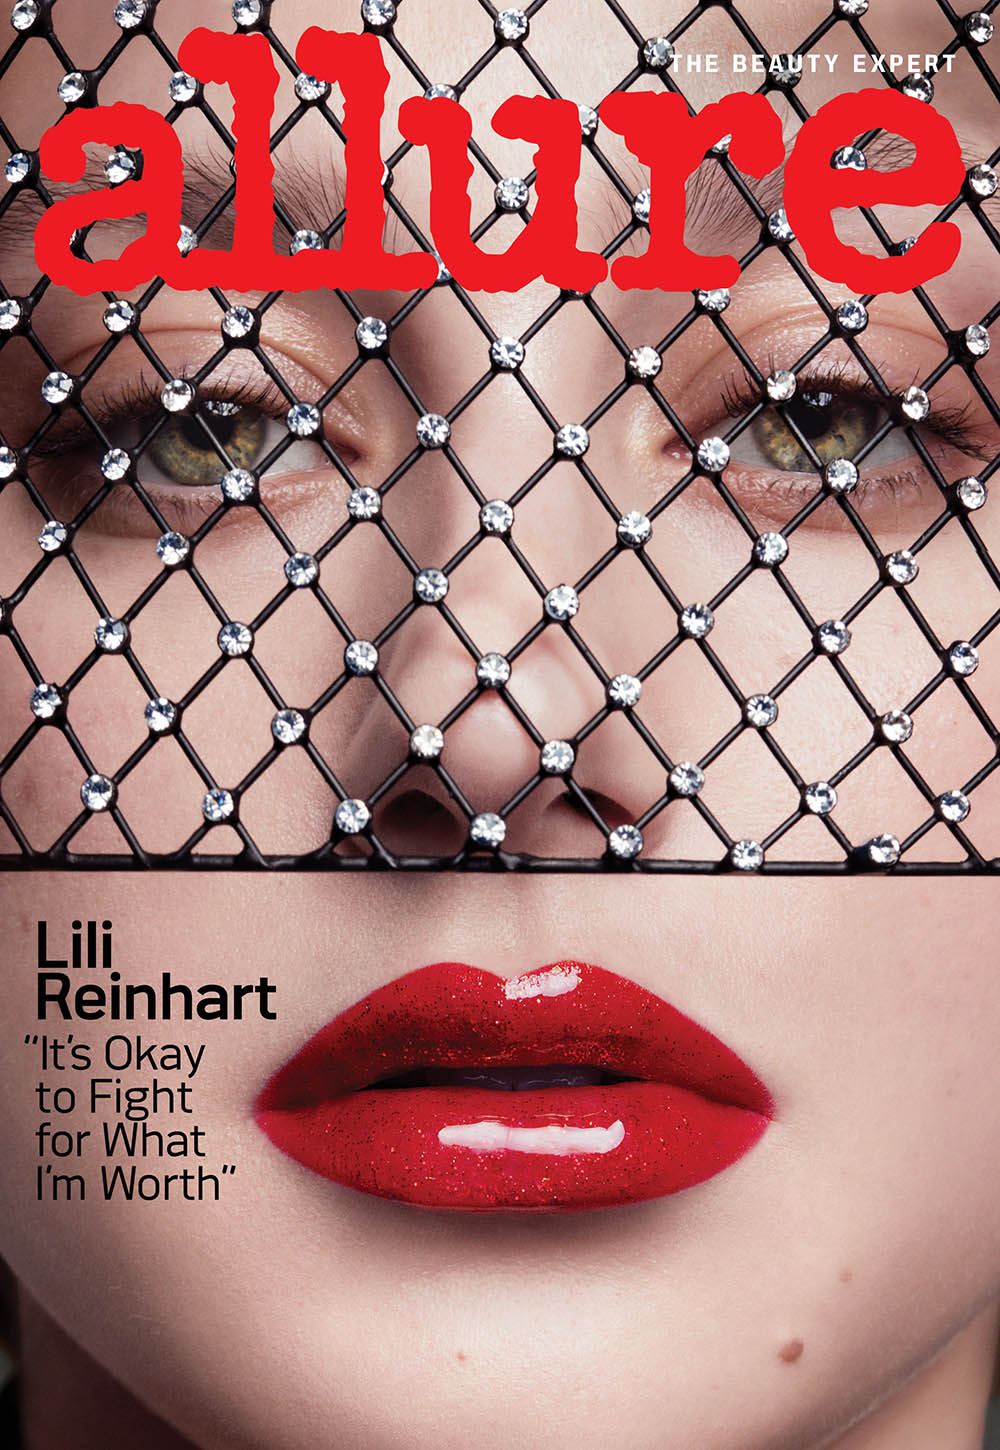 Lili Reinhart covers Allure US March 2020 by Marcus OhlssonLili Reinhart covers Allure US March 2020 by Marcus Ohlsson